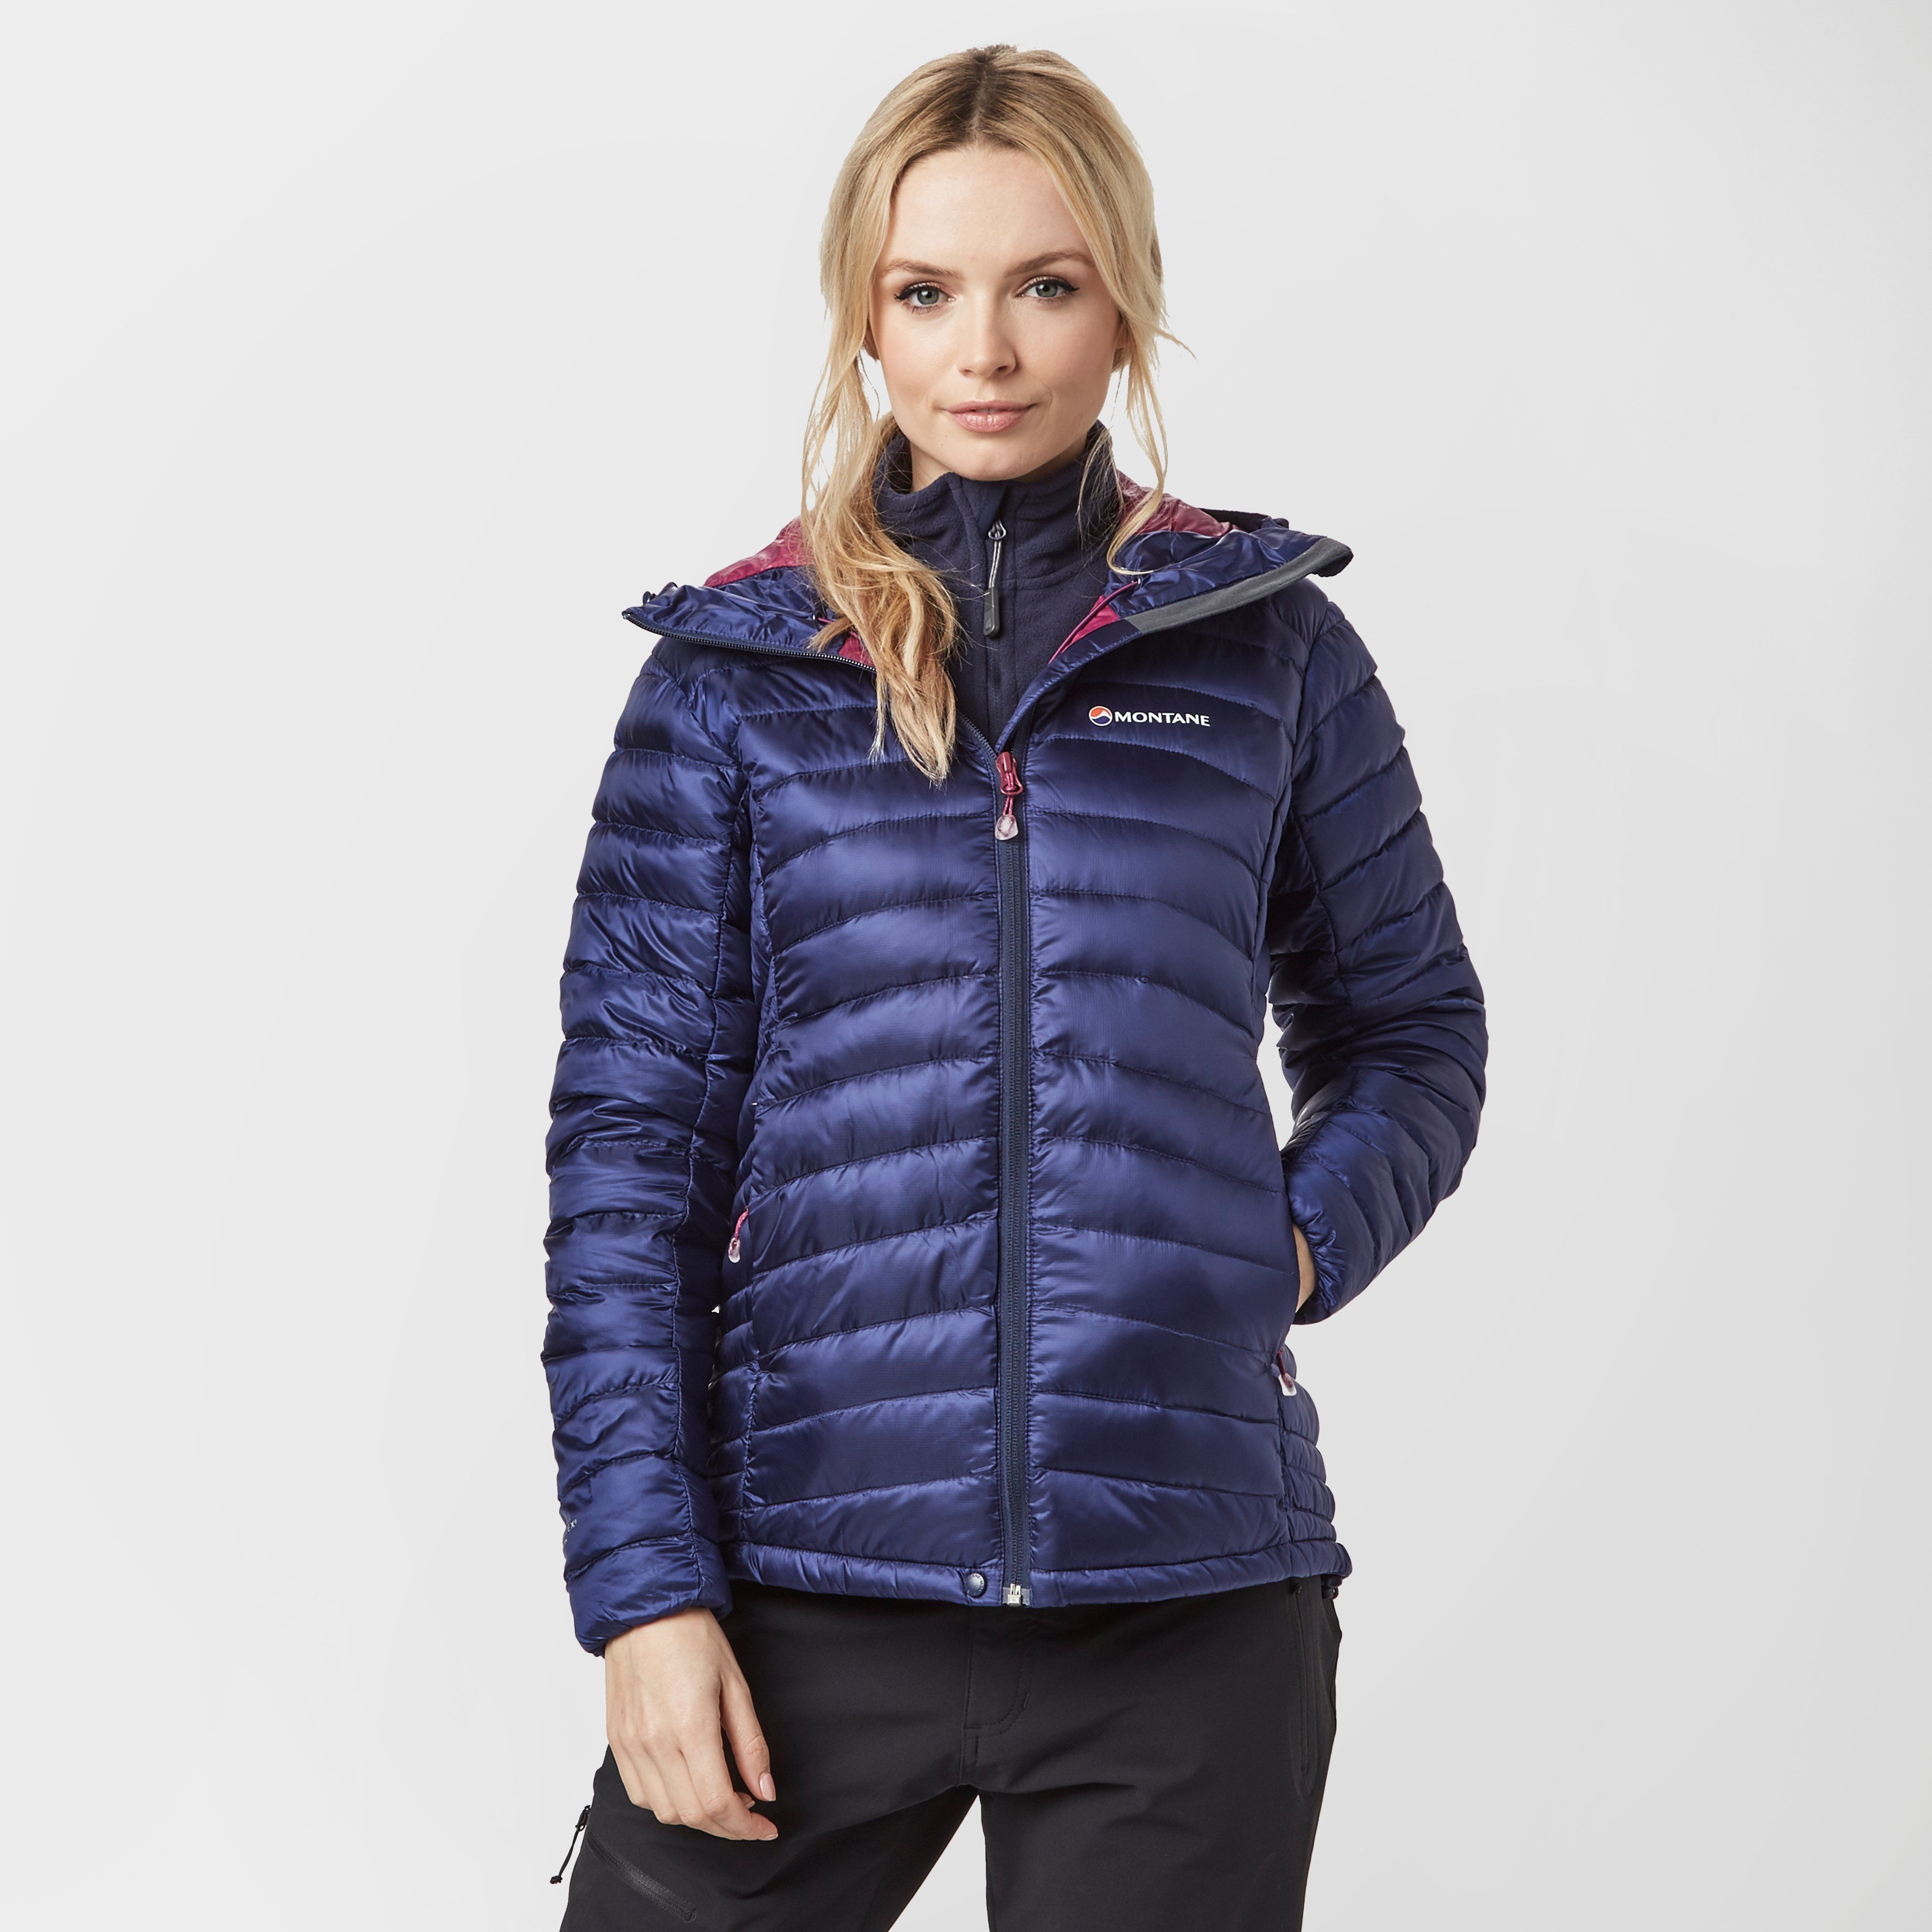 MONTANE Women's Featherlite™ Down Jacket